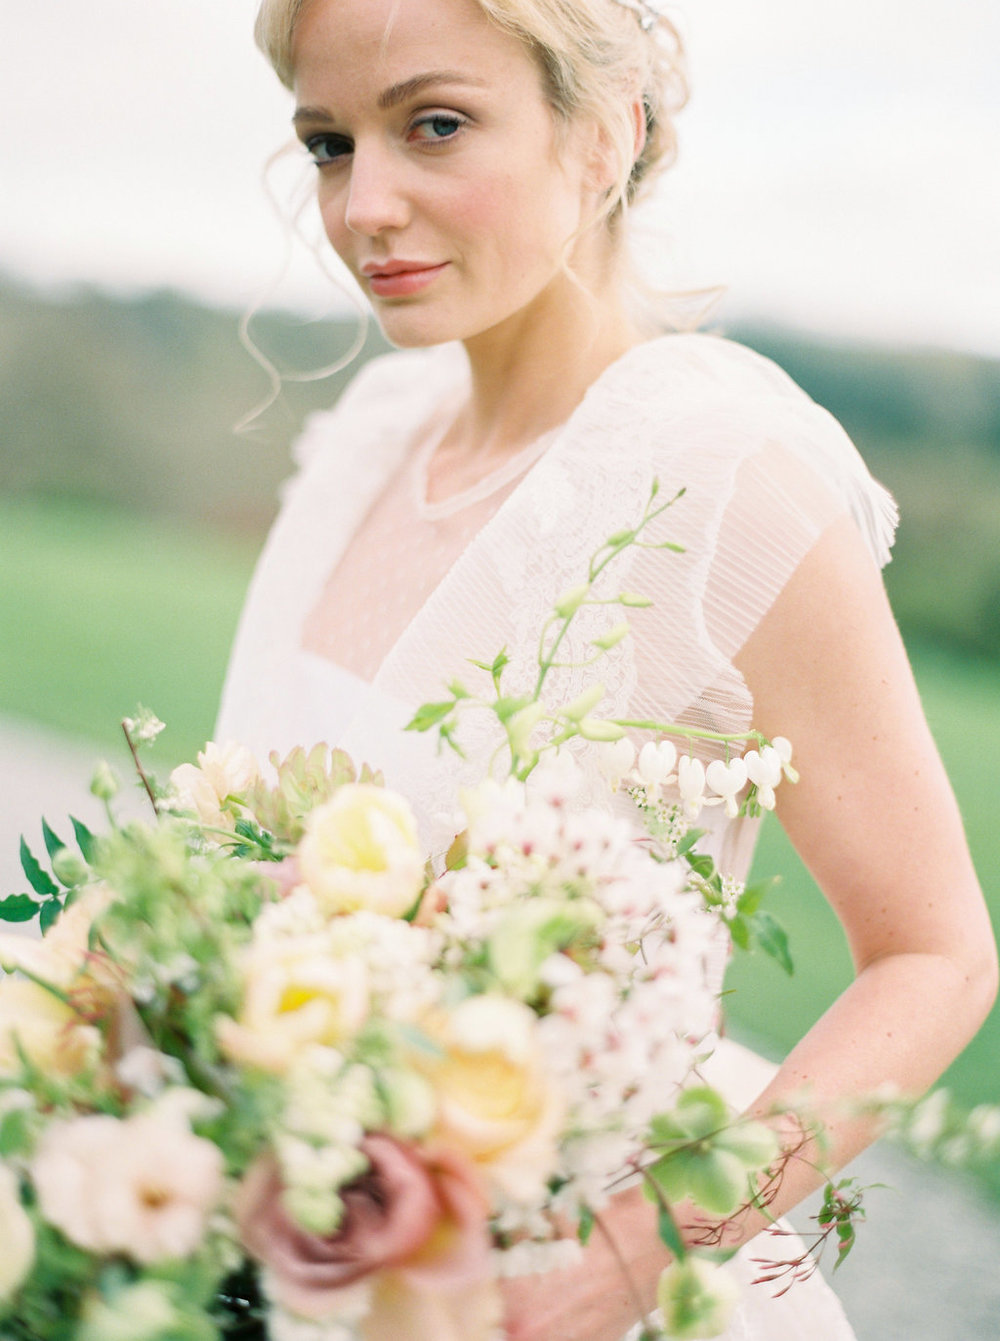 Bridal makeup and hair plus accessories by victoria fergusson at Hotel Endsleigh (67).jpg